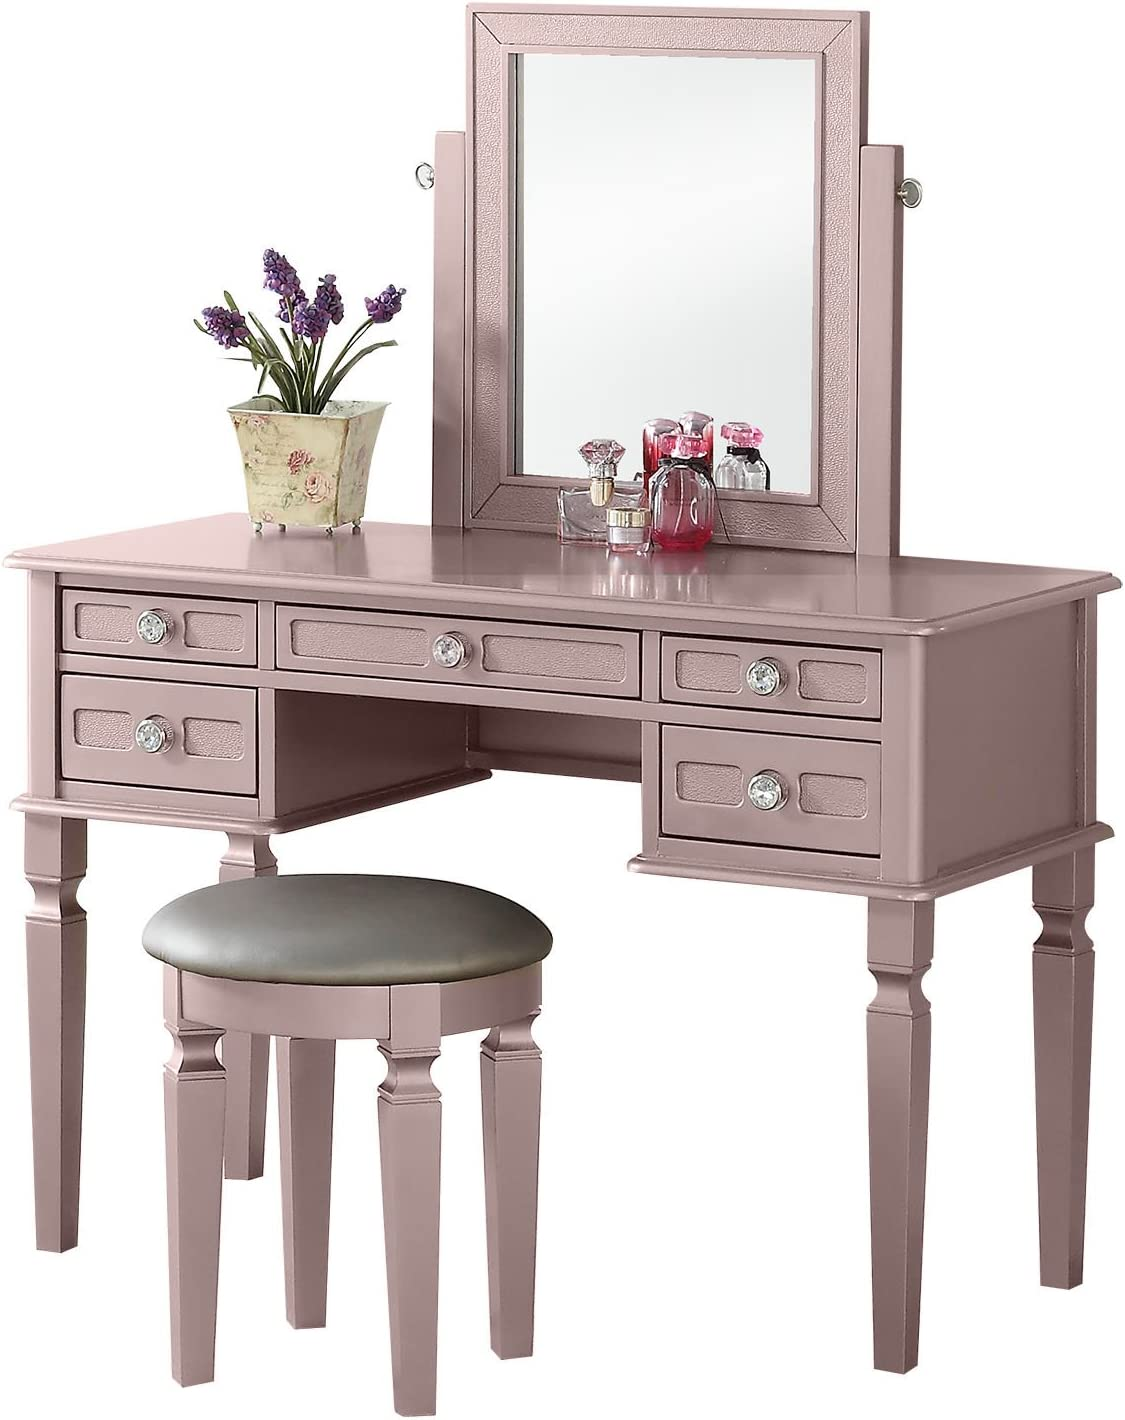 Bobkona Vanity Table With Stool Set, Rose Gold